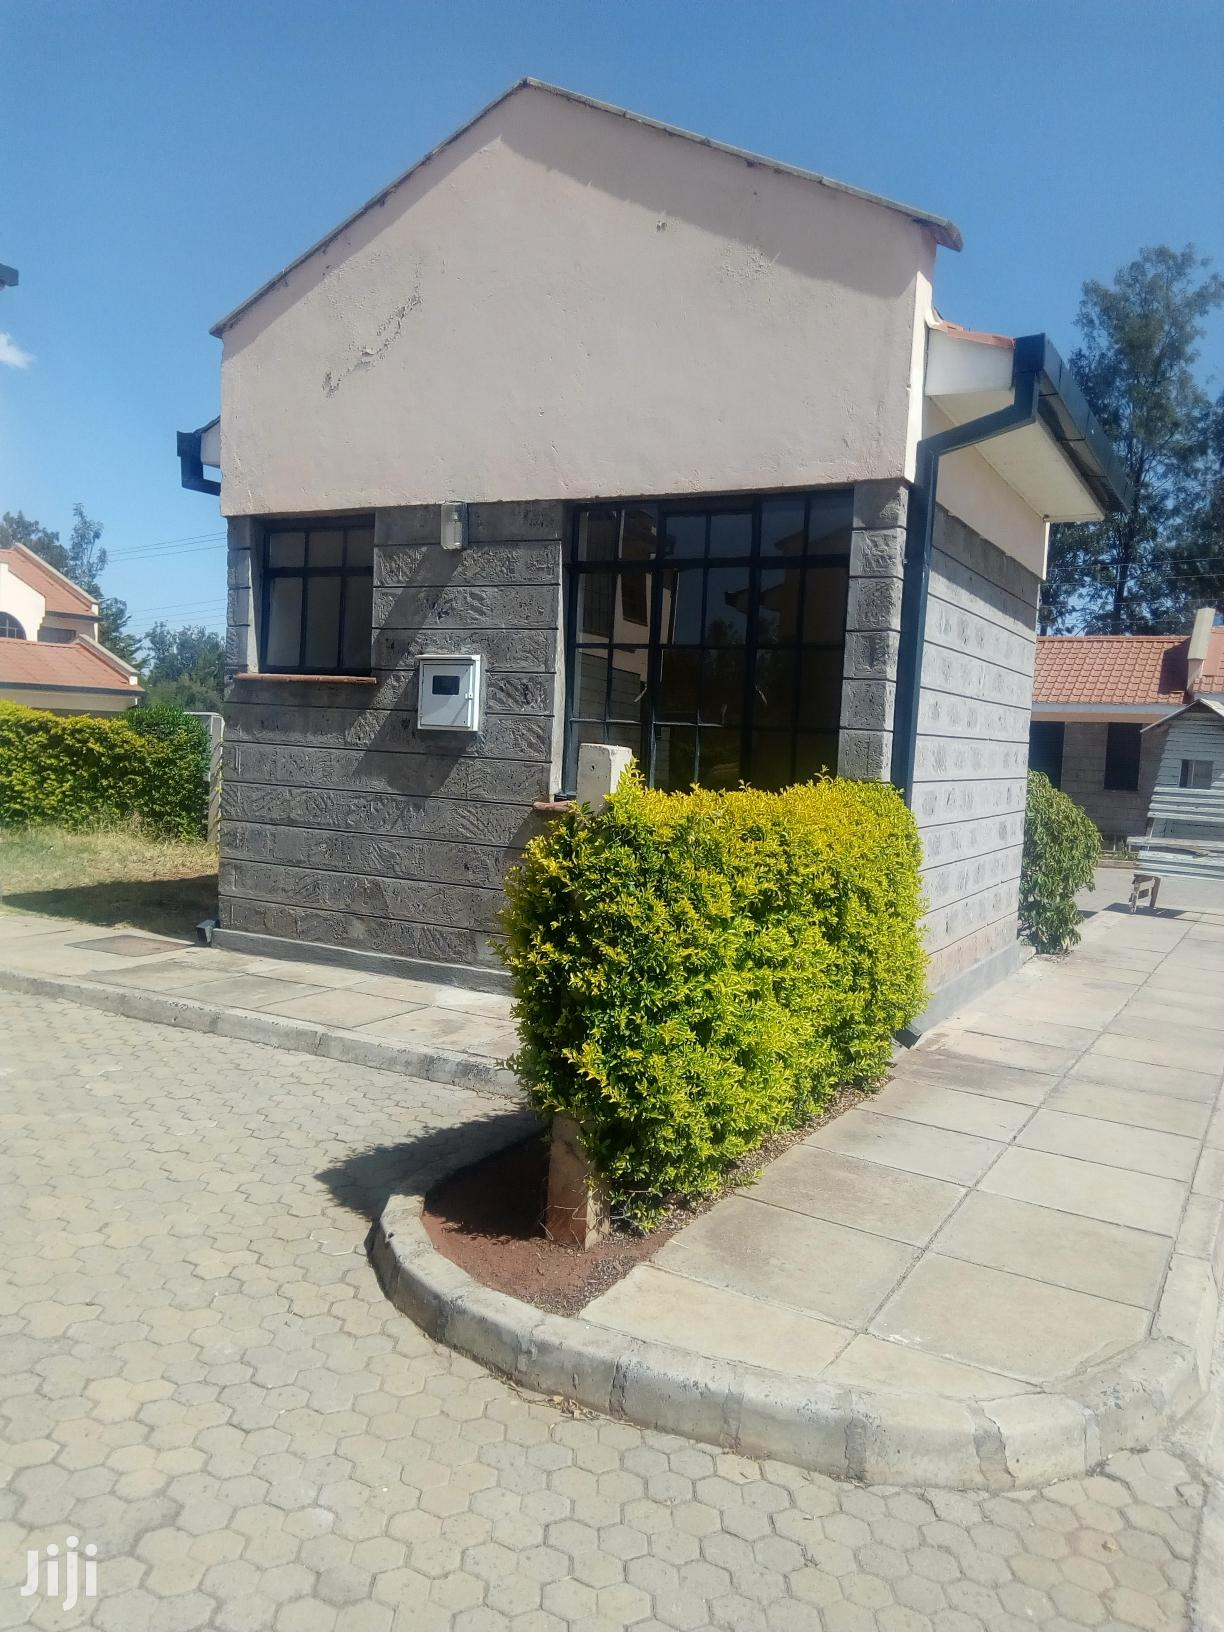 Townhouse To Let In Ngong Matasia | Houses & Apartments For Rent for sale in Karen, Nairobi, Kenya